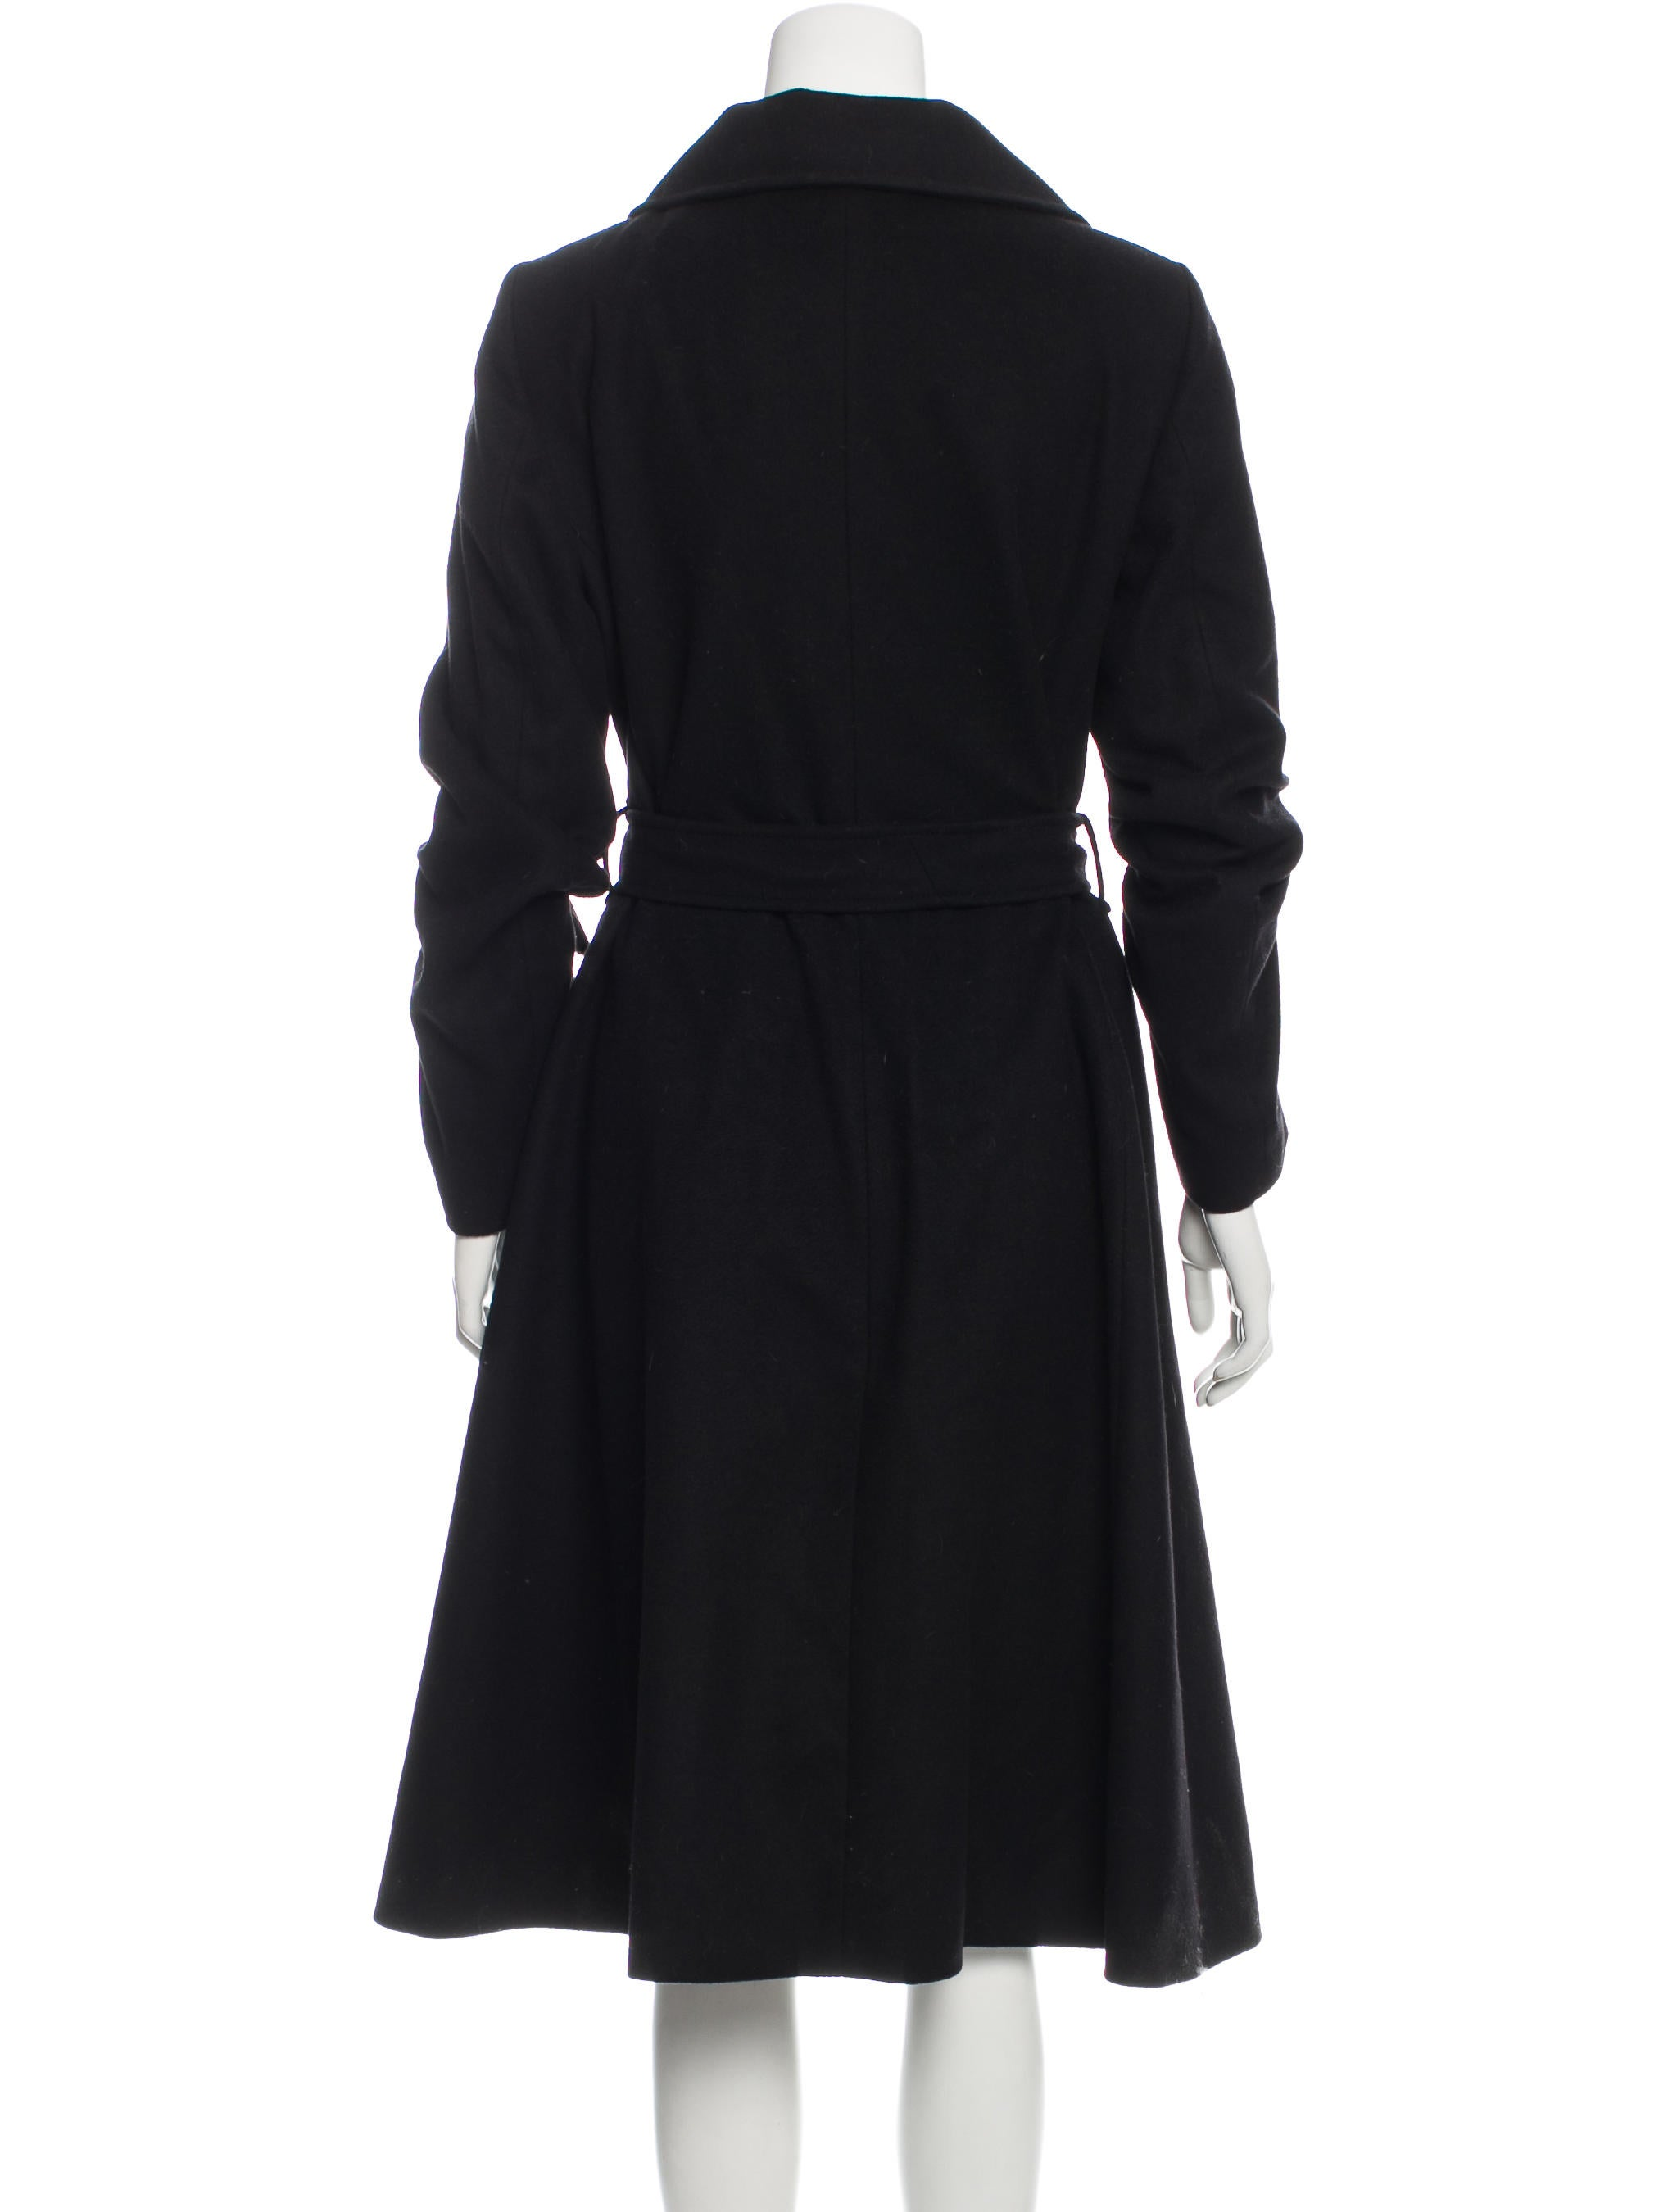 Classic Long Wool Coat: In a rich wool blend and longer length, this classic coat will keep you looking your best for many winter seasons to come. Notch collar styling Princess seams for shape/5(42).